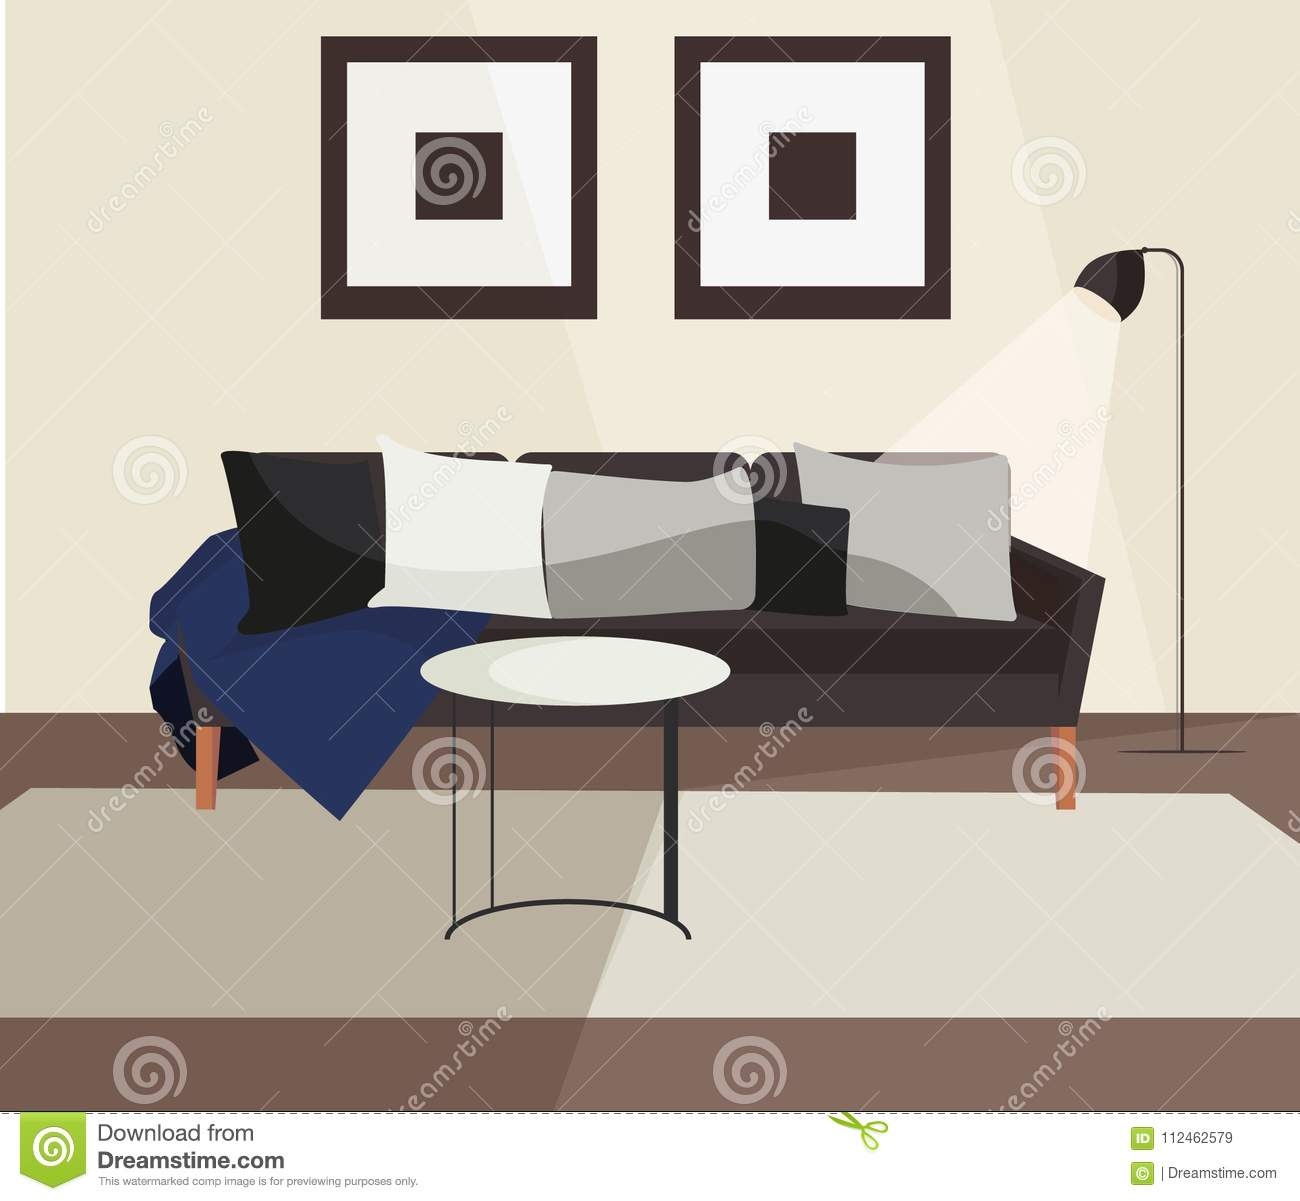 Living room sofa couch scandinavian minimalistic interior modern indoor home design with furniture vector illustration objects pack